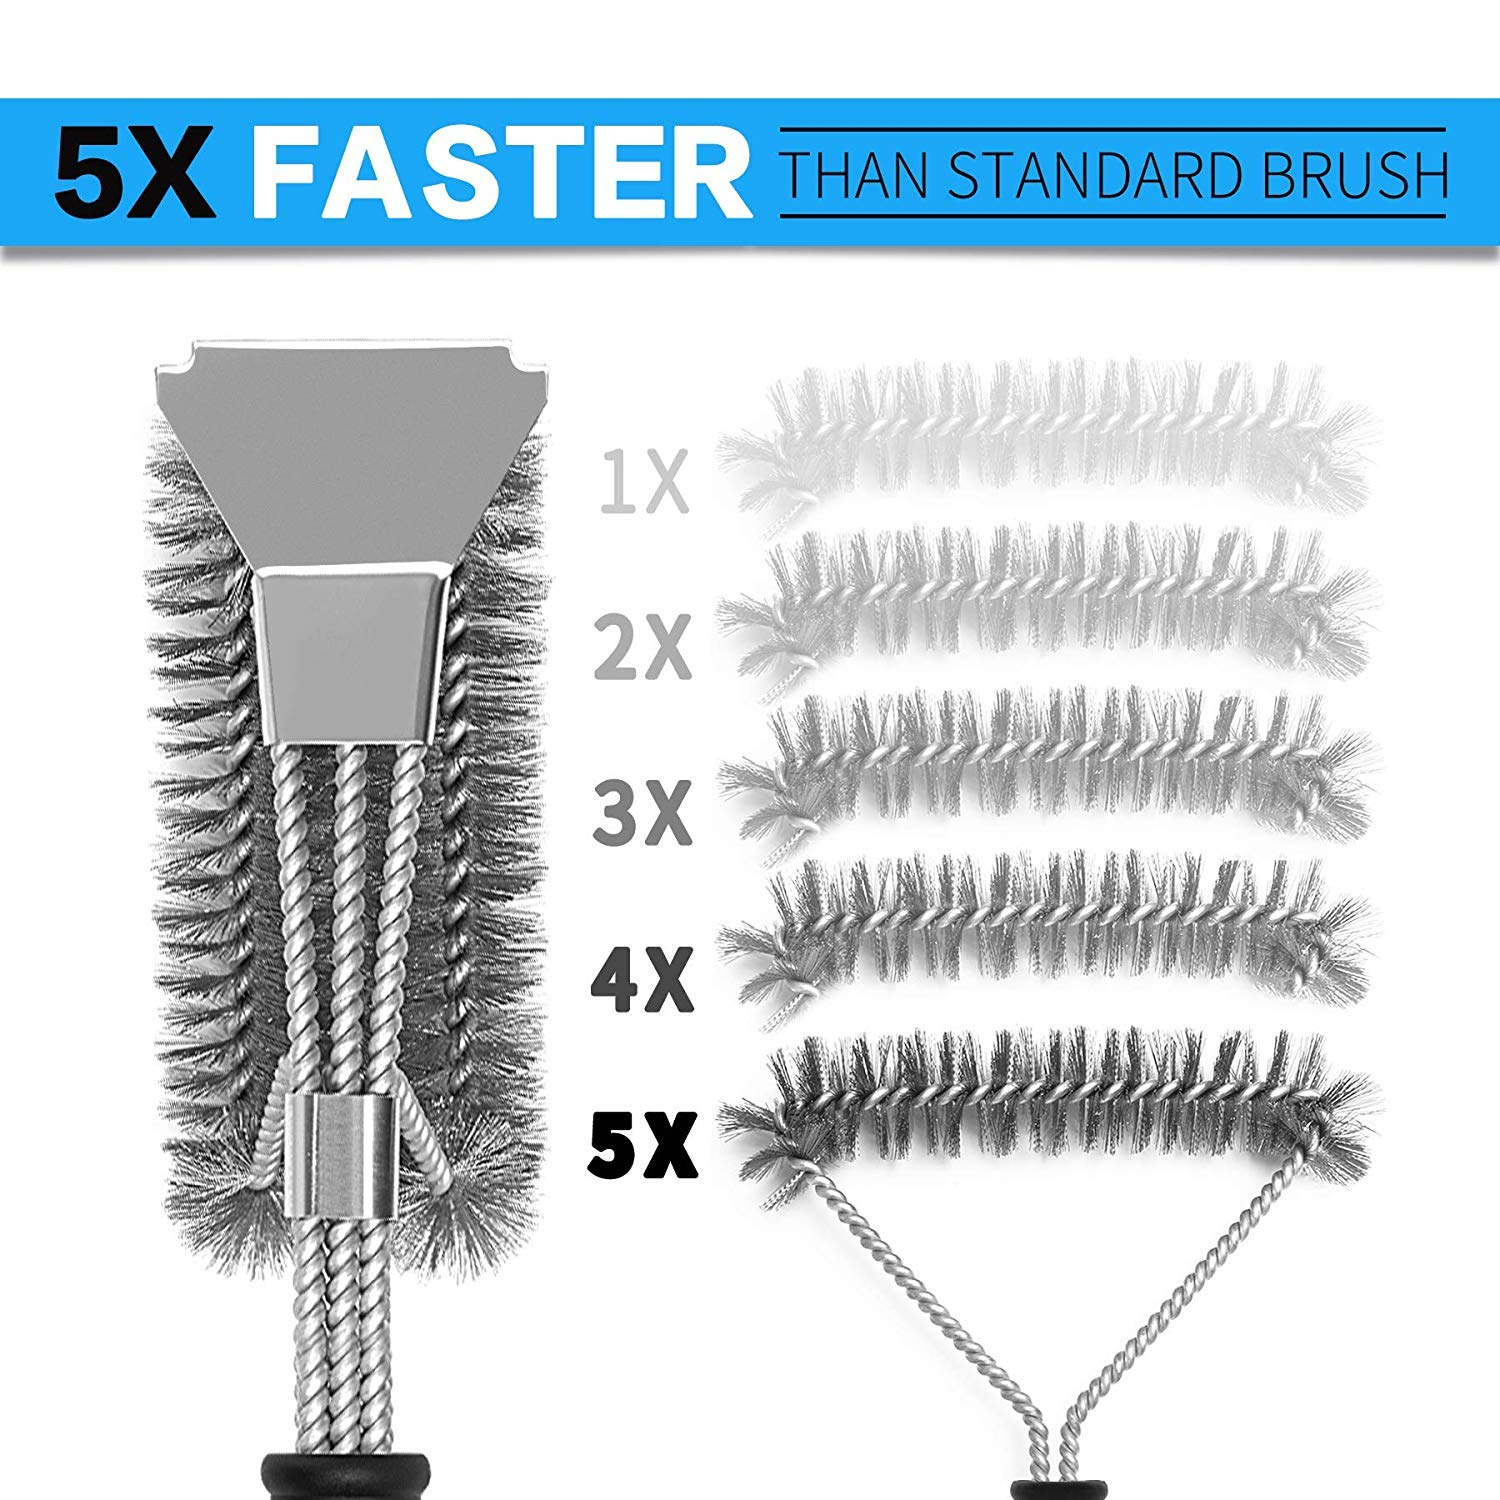 BBQ Grill Brush Set of 2, Safe Grill Cleaning Brush Stainless Steel Bristle Free with Scraper for Porcelain, Cast Iron, Stainless Steel, Ceramic Grill Grate Cooking Grid, 18'' Grill Tools Accessories by GASPRO (Image #8)